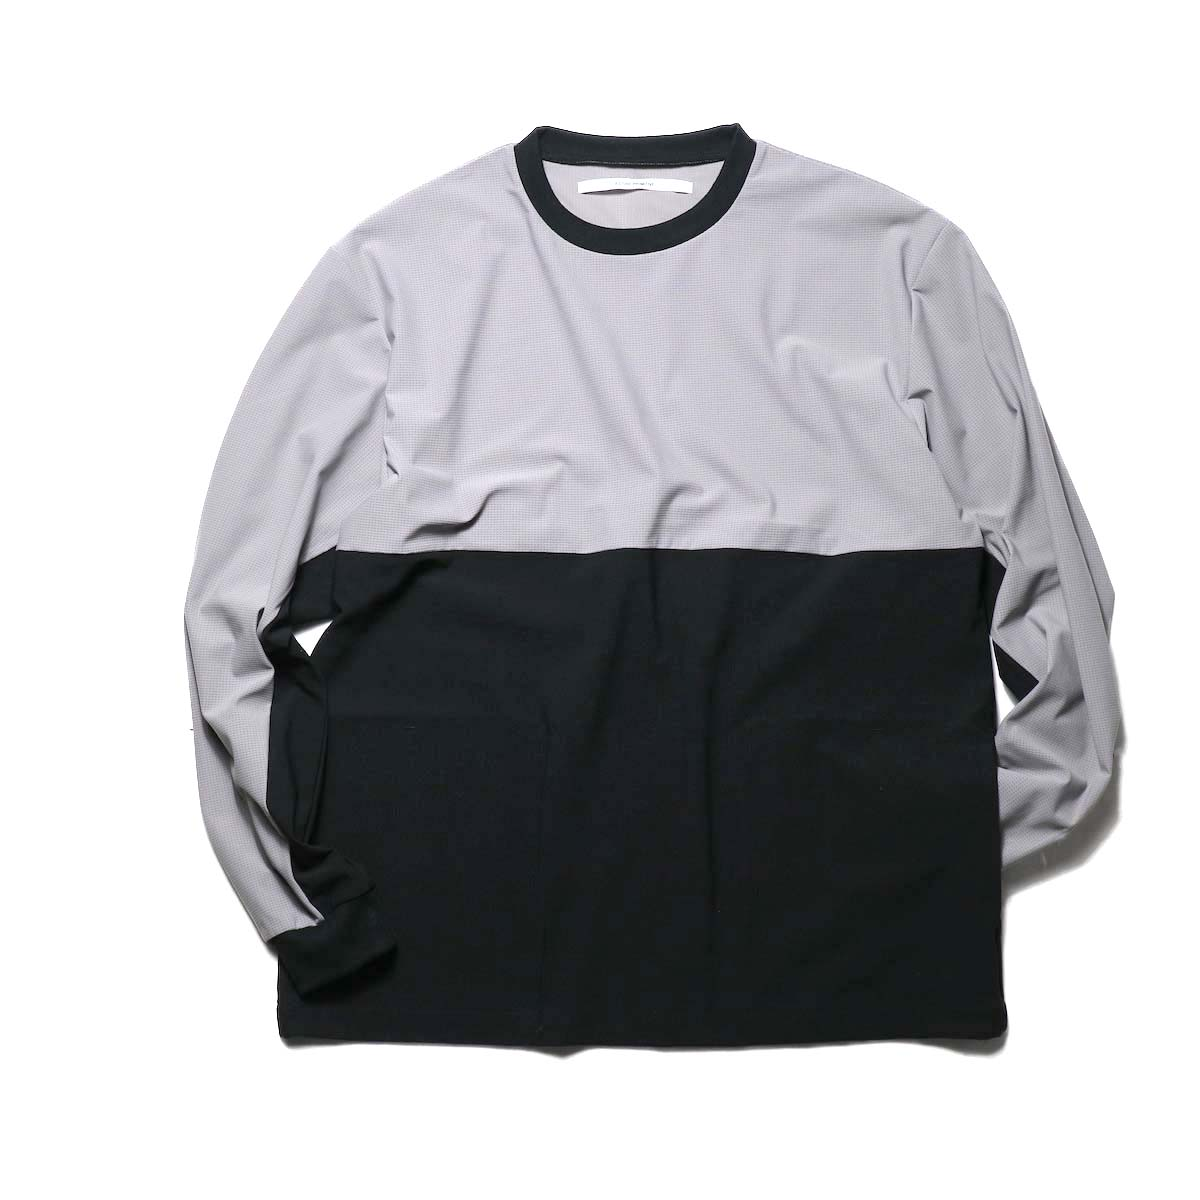 FUTURE PRIMITIVE / FP 2TONE MESH CREW  (Gray × Black)